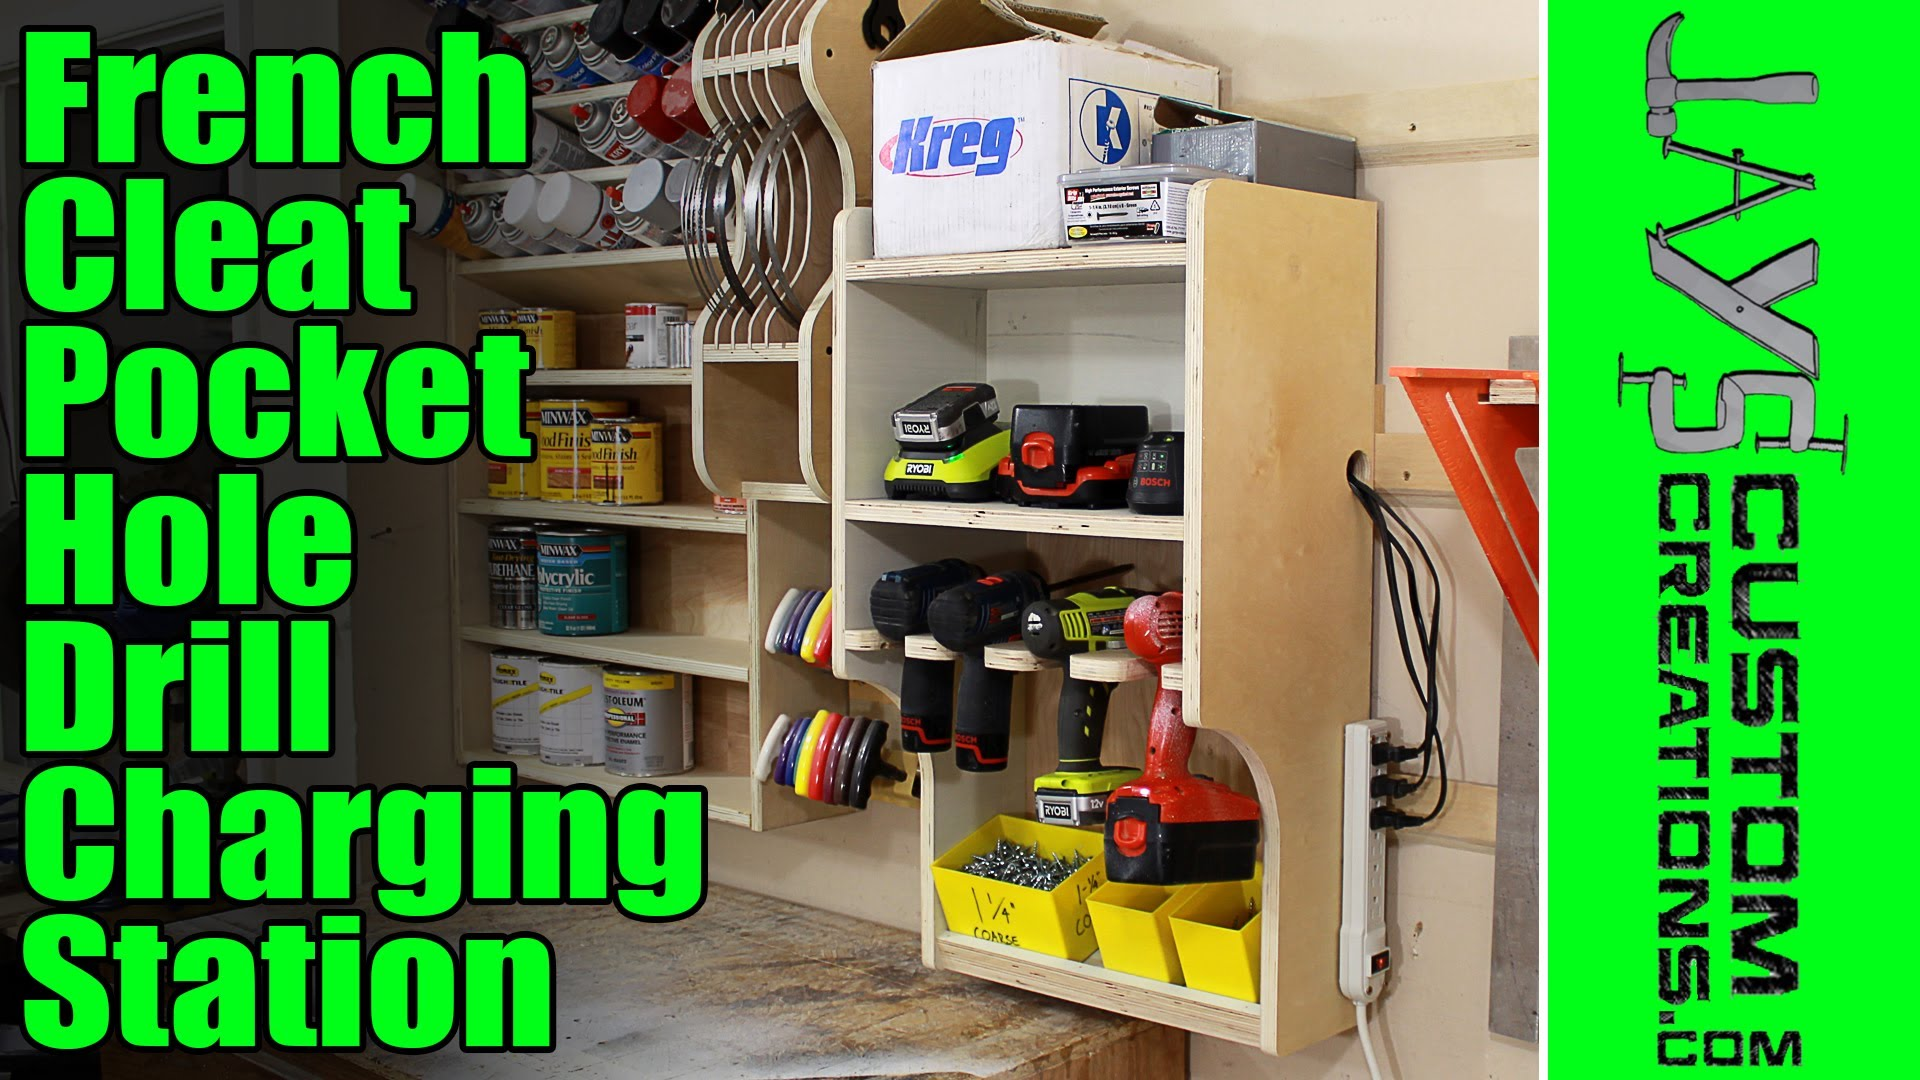 How To Make A French Cleat Pocket Hole Drill Charging Station Jays